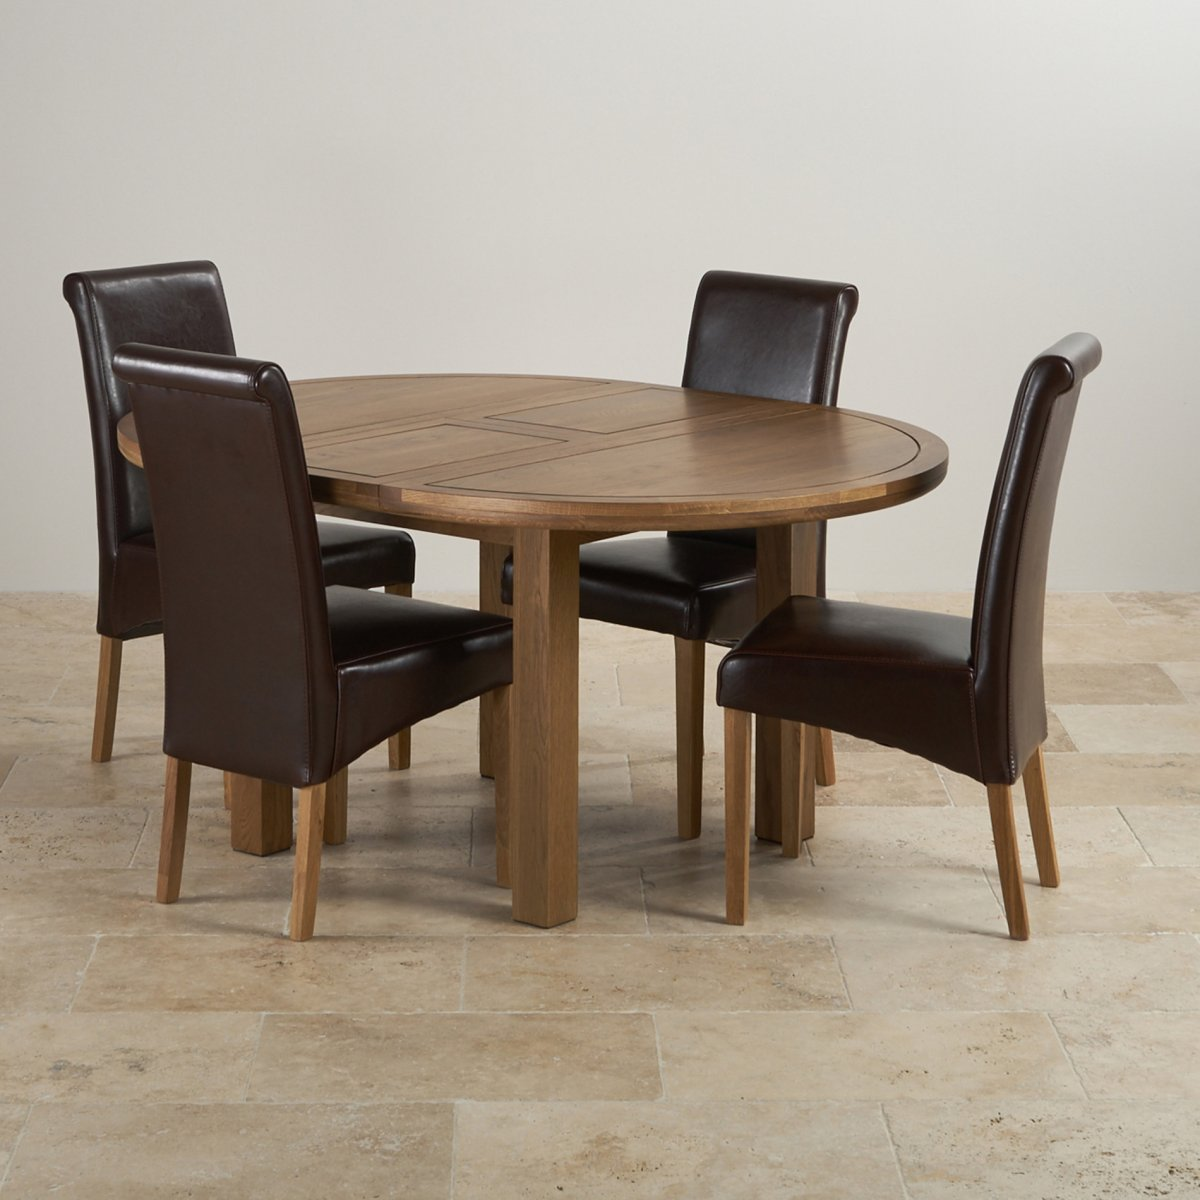 round oak table and 6 chairs chair cover rental barrie knightsbridge extending dining set 43 4